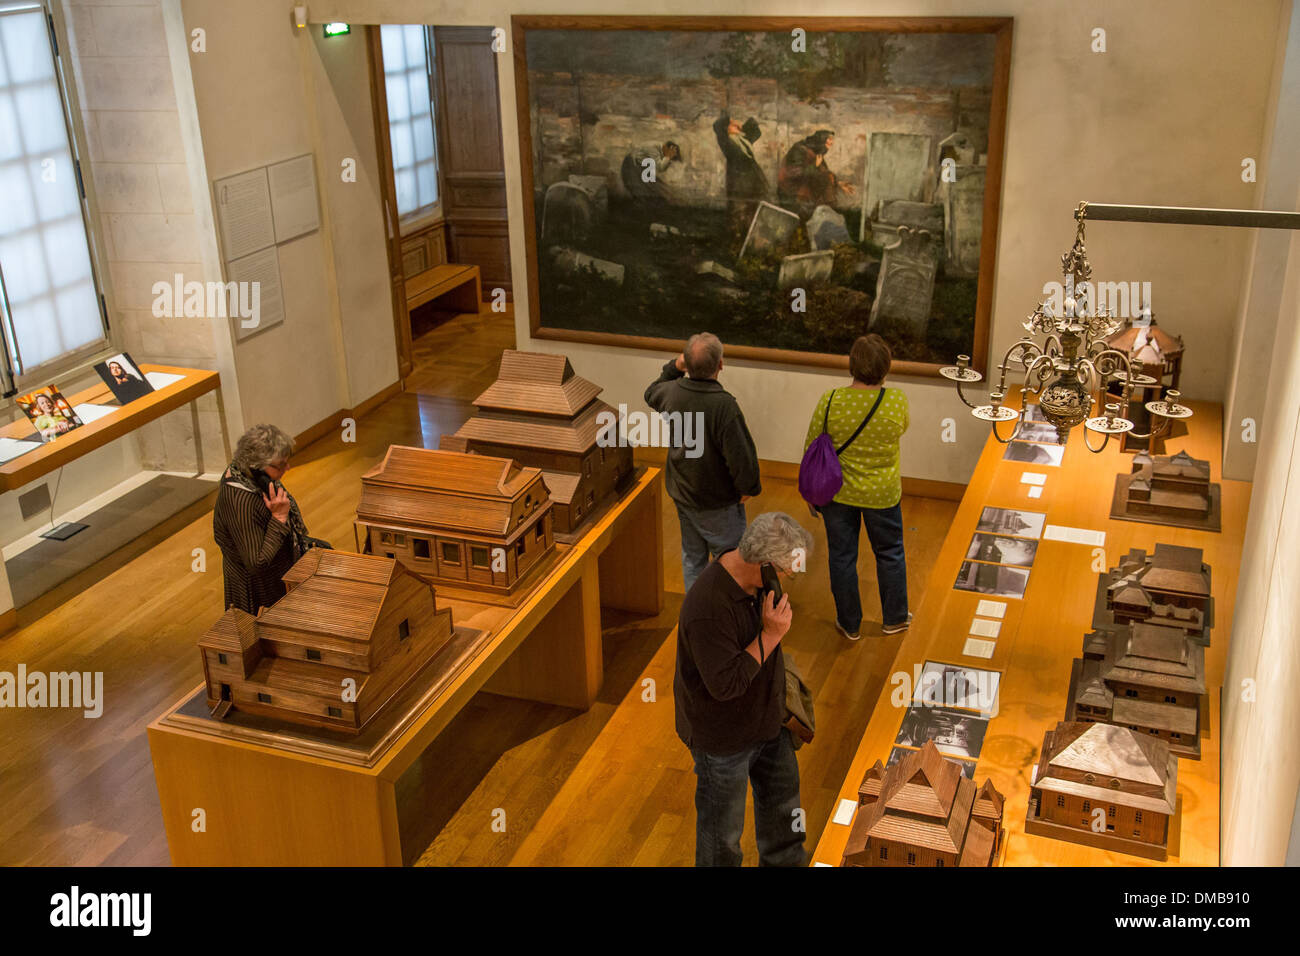 MUSEUM OF JEWISH ART AND HISTORY IN THE HOTEL DE SAINT-AIGNAN, 3RD ARRONDISSEMENT, PARIS (75), ILE-DE-FRANCE, FRANCE - Stock Image